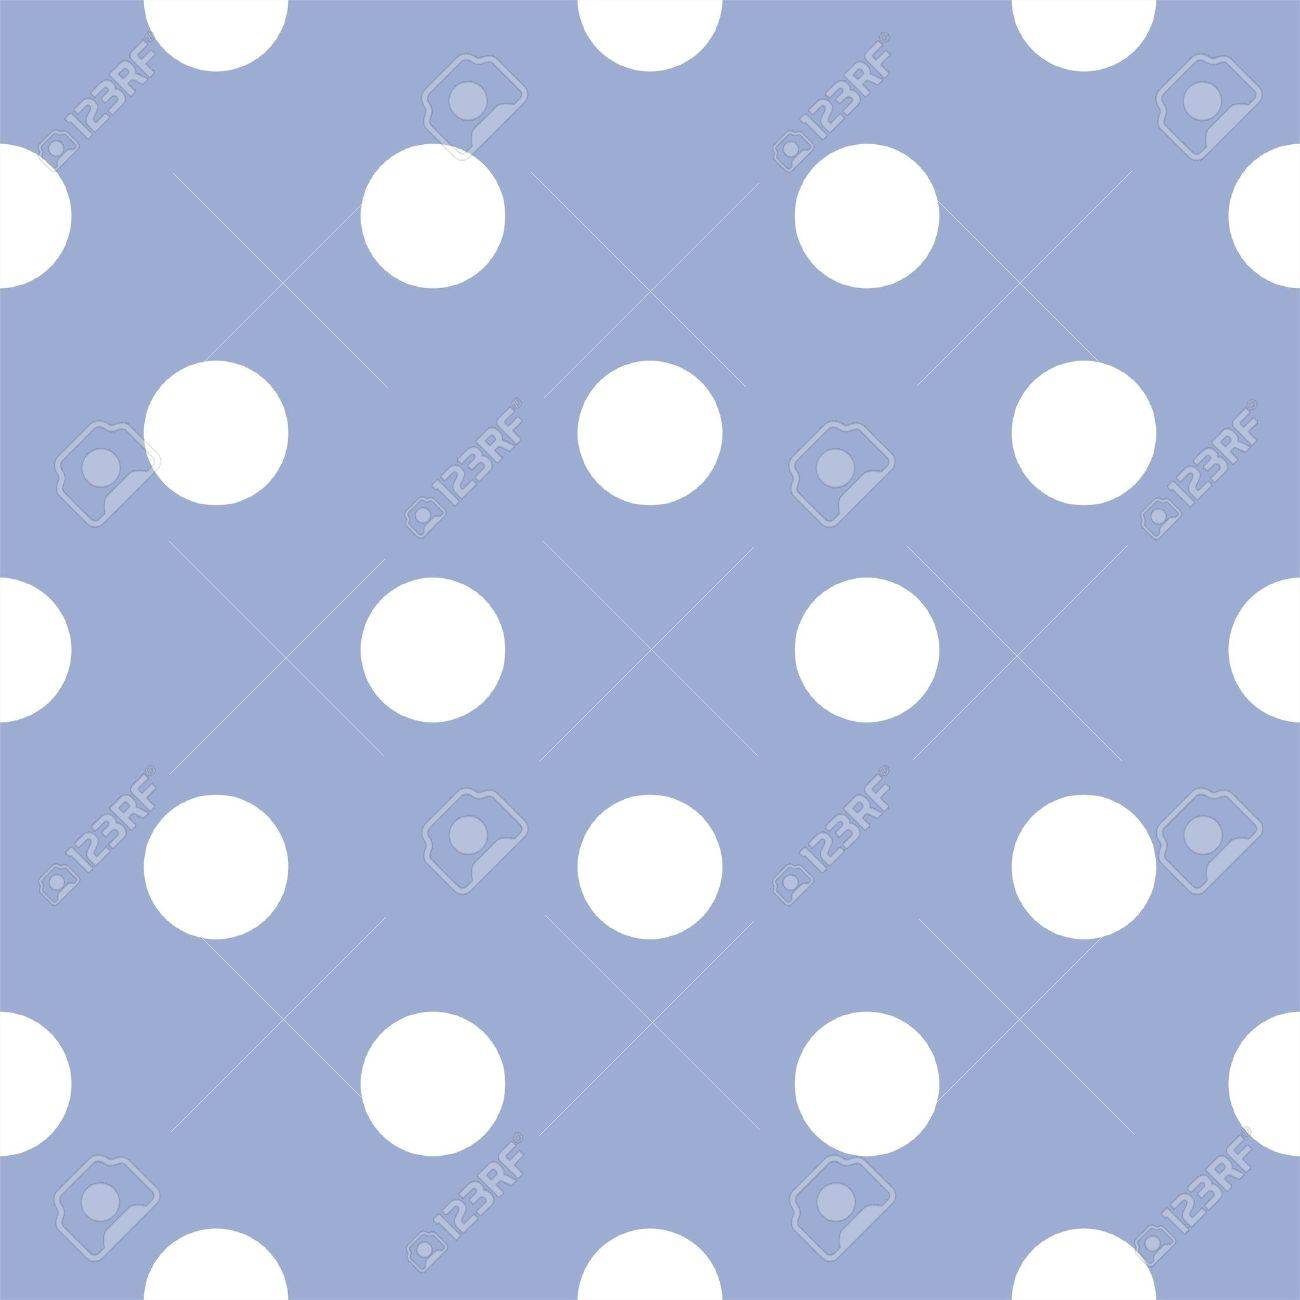 seamless pattern with huge white polka dots on a retro baby blue background. For cards, invitations, wedding or baby shower albums, backgrounds, arts and scrapbooks Stock Vector - 14270899